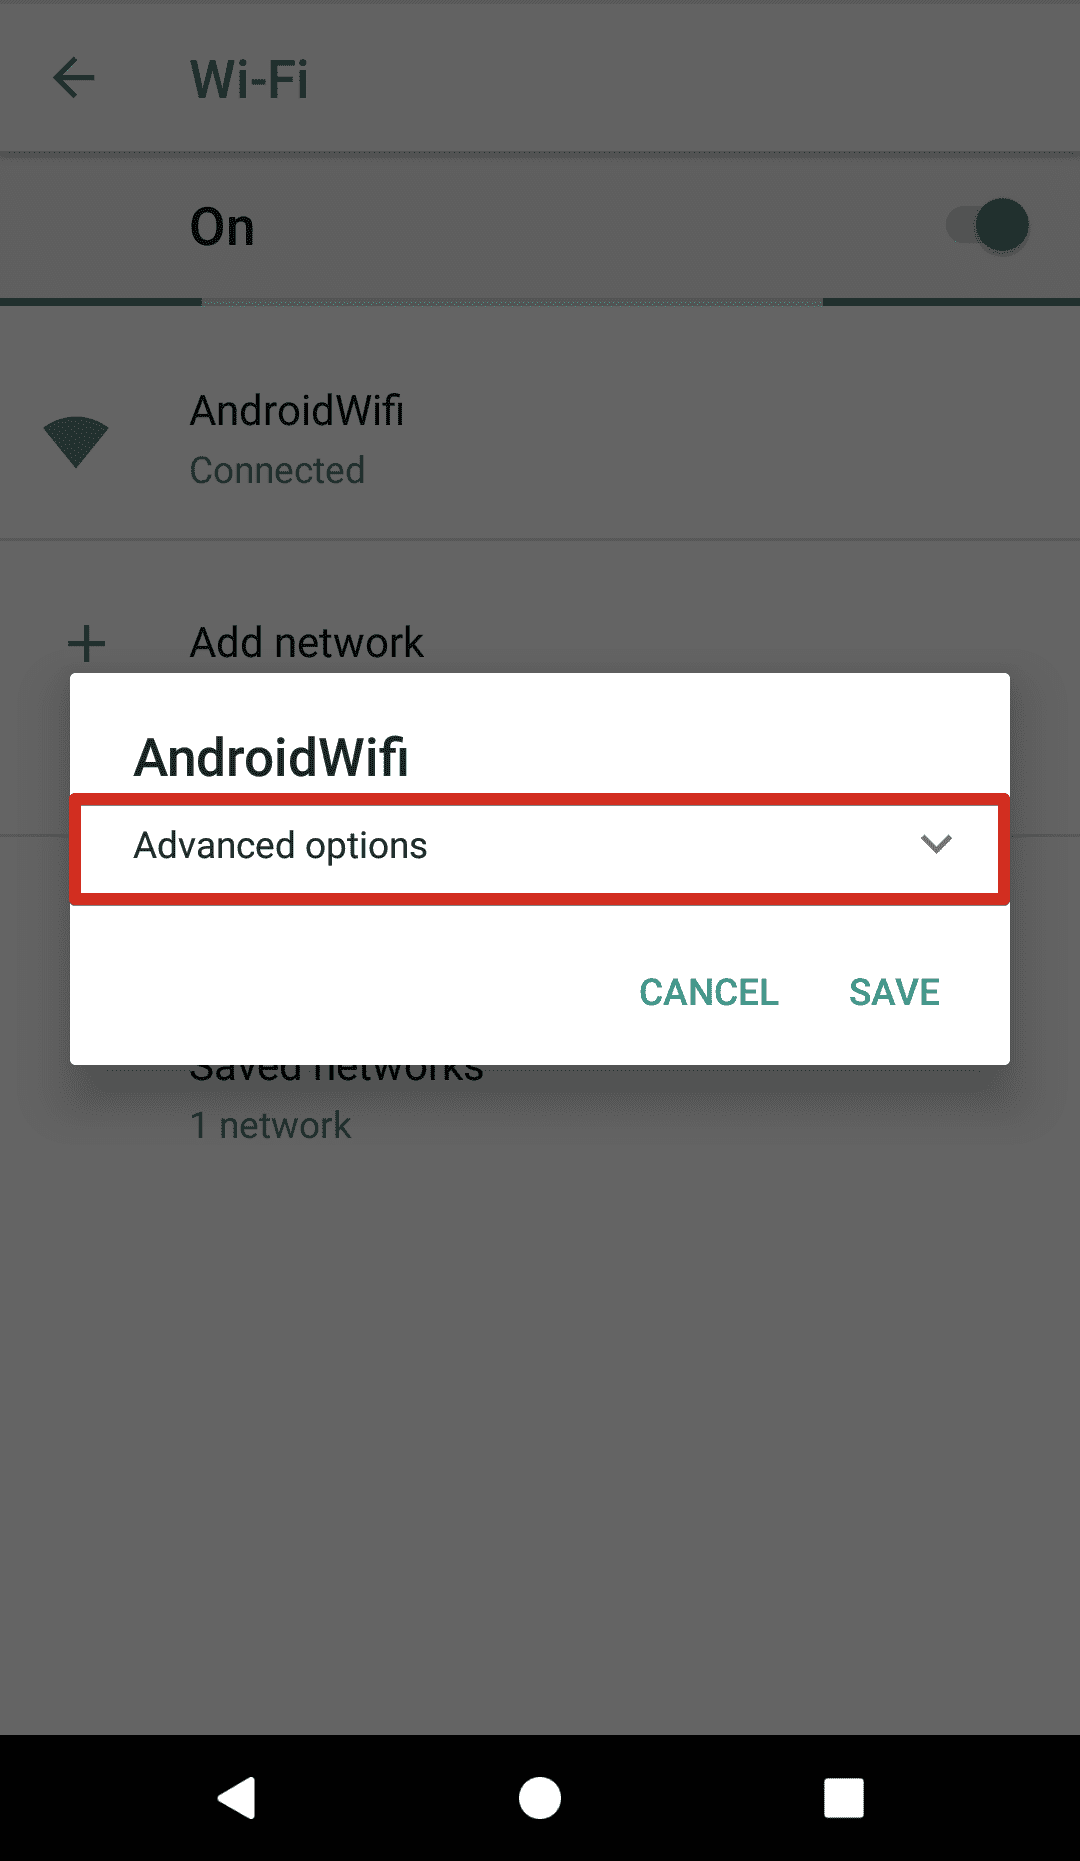 Configure SmartDNS on Android 8 - WiFi network screen with advanced options